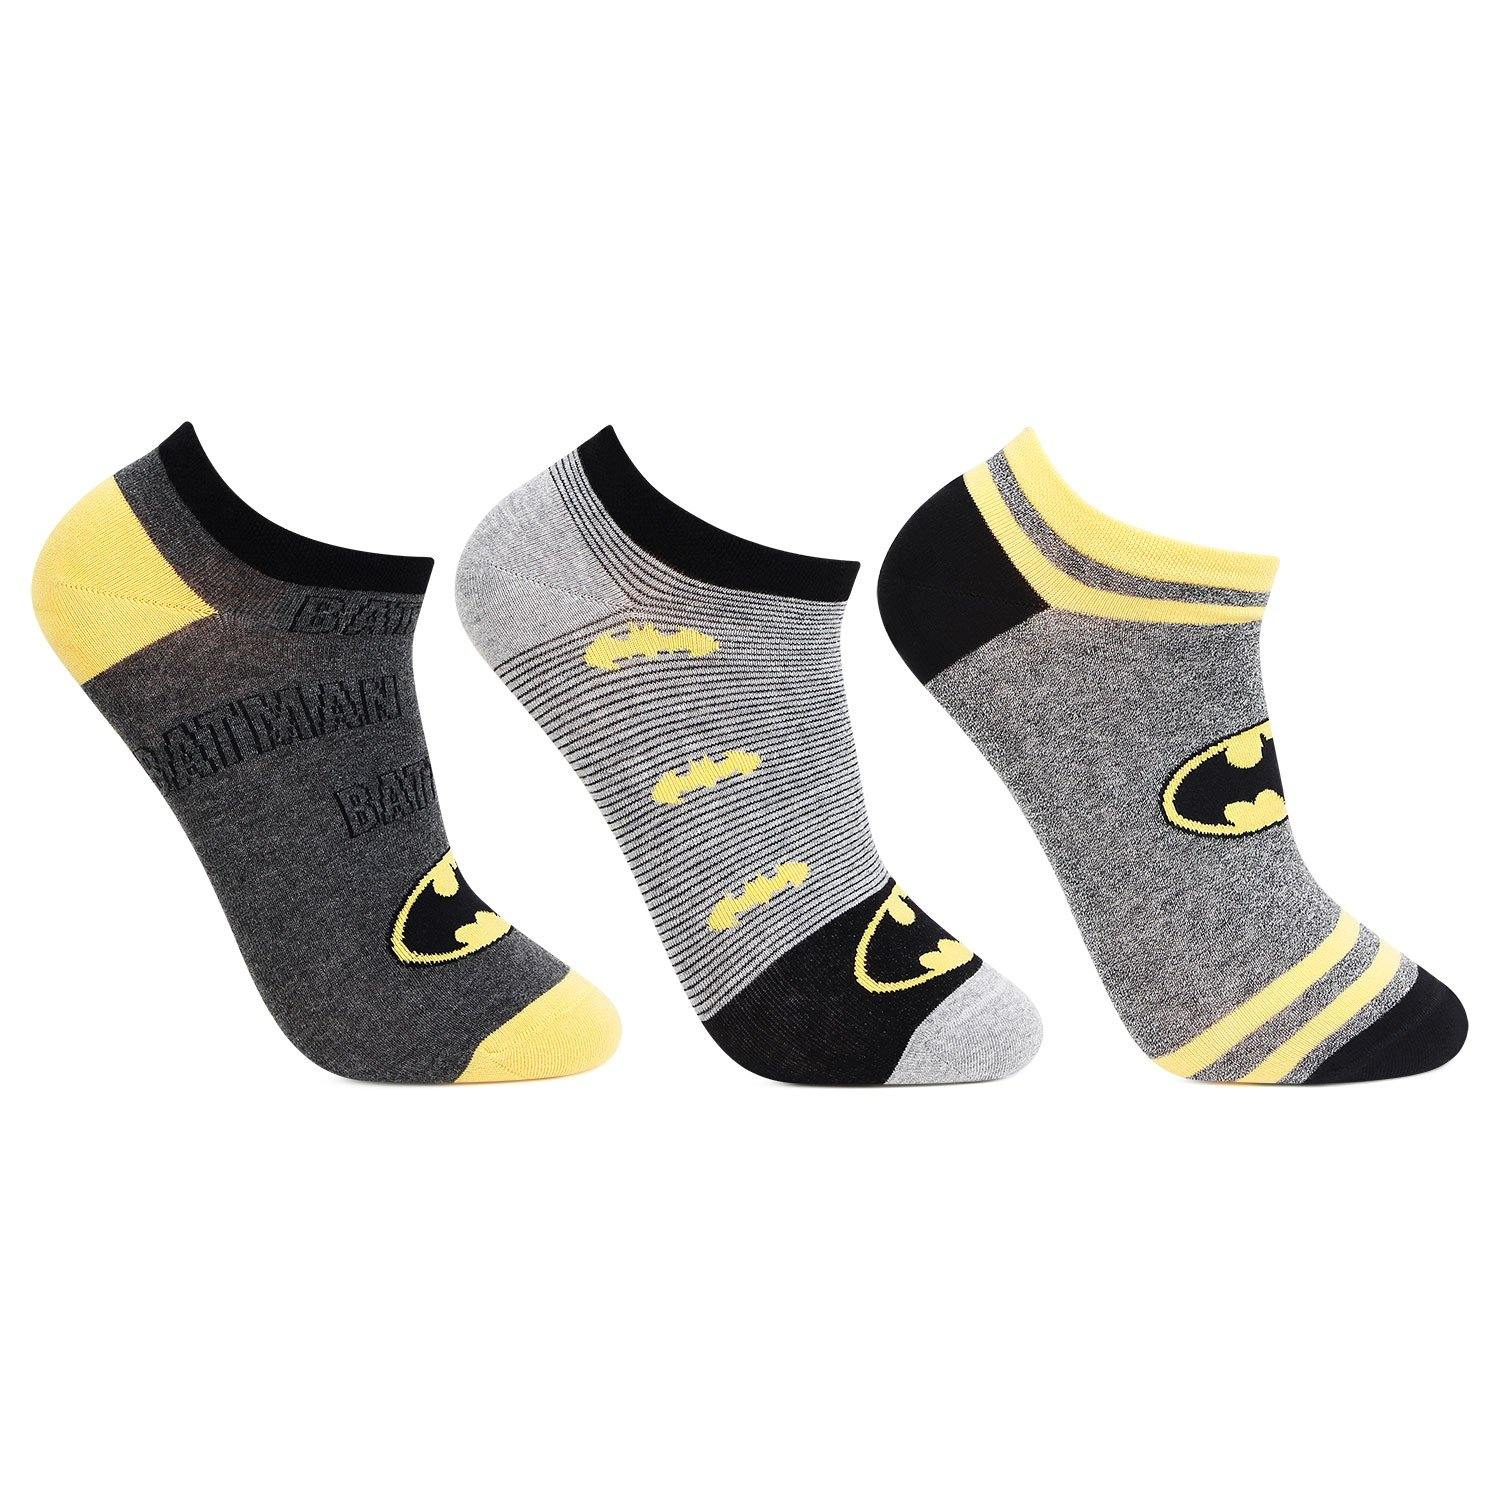 Batman Secret-Length Socks For Men - Pack Of 3